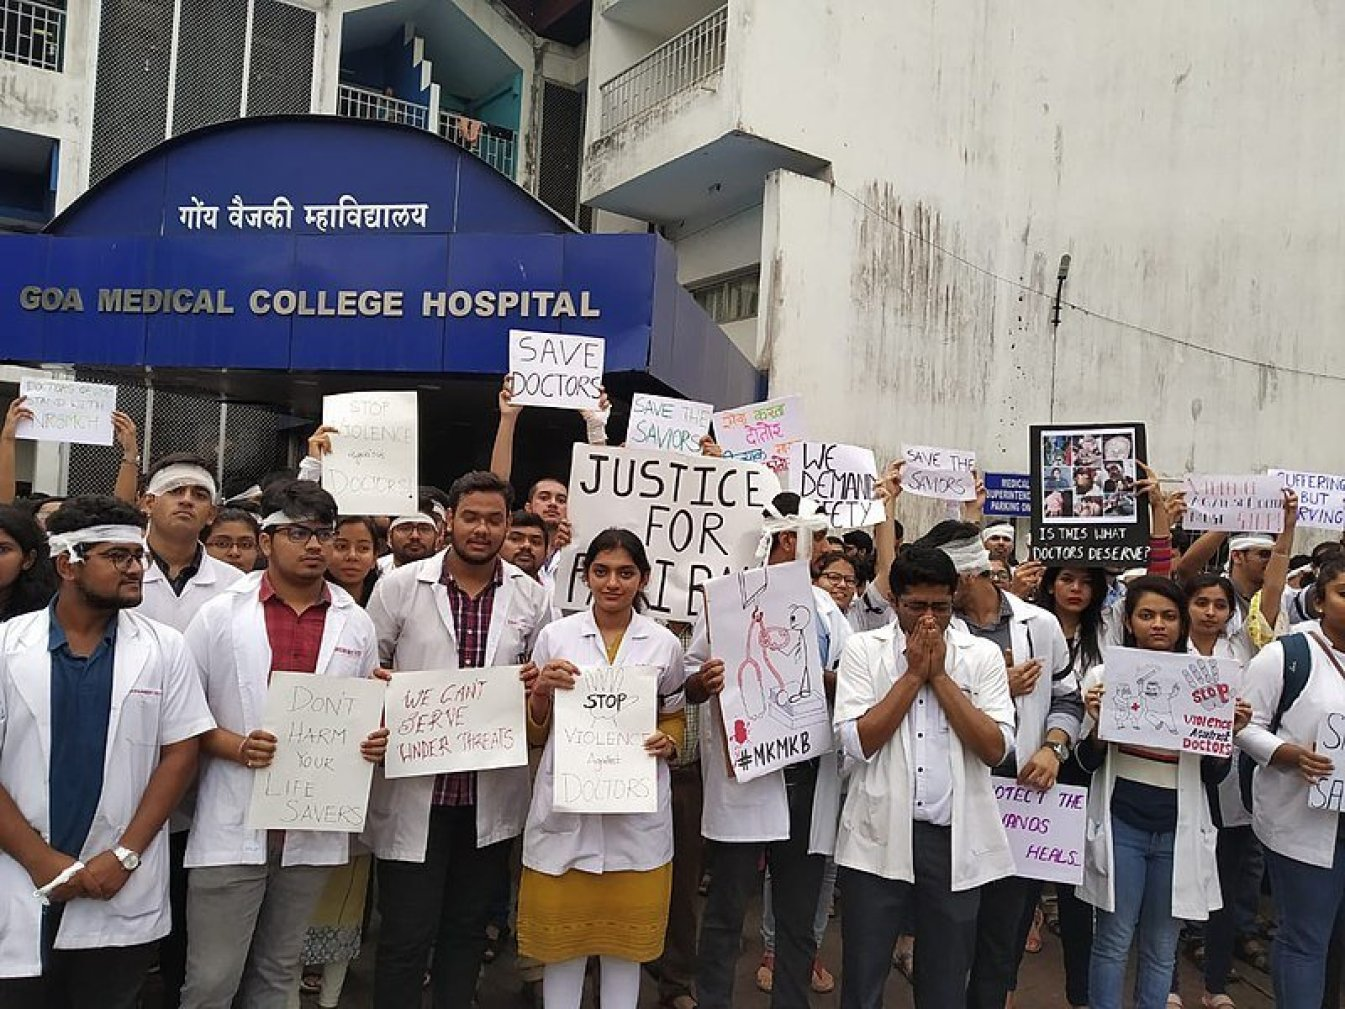 Draft law on violence against doctors